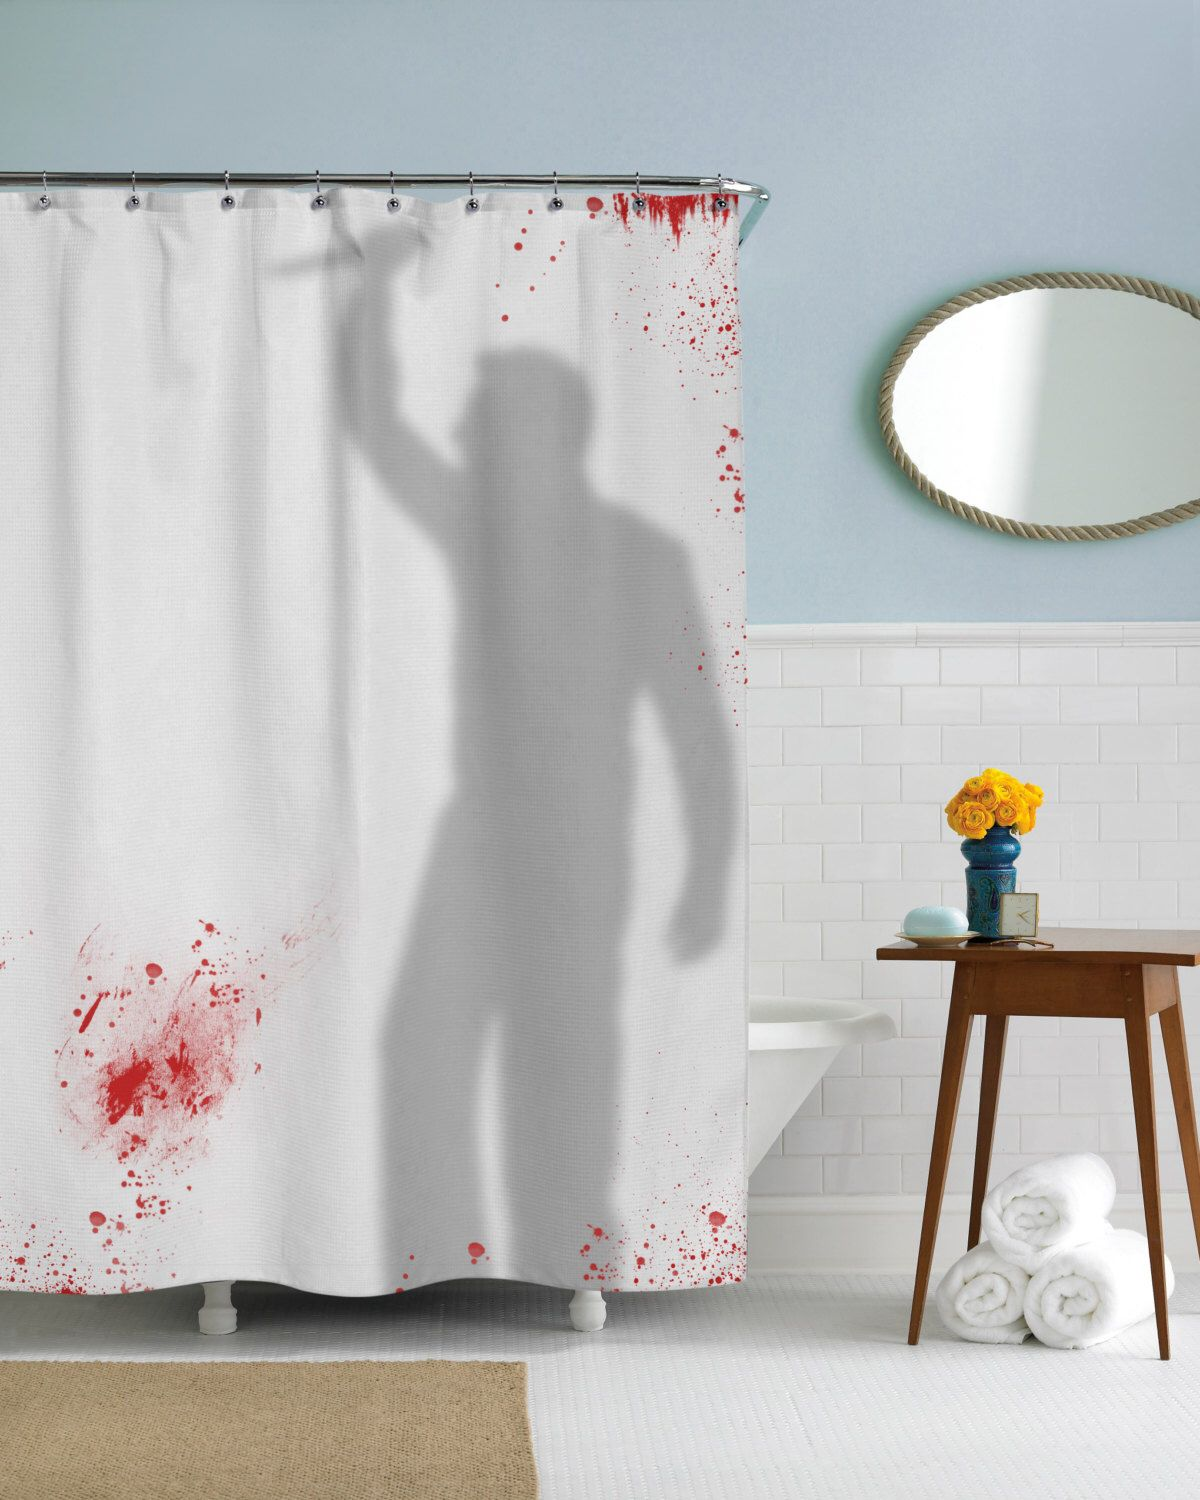 Charming Psycho Killer, Scary, Bloody, Knife, Shower Curtain By CrazyDogTshirts On  Etsy Https